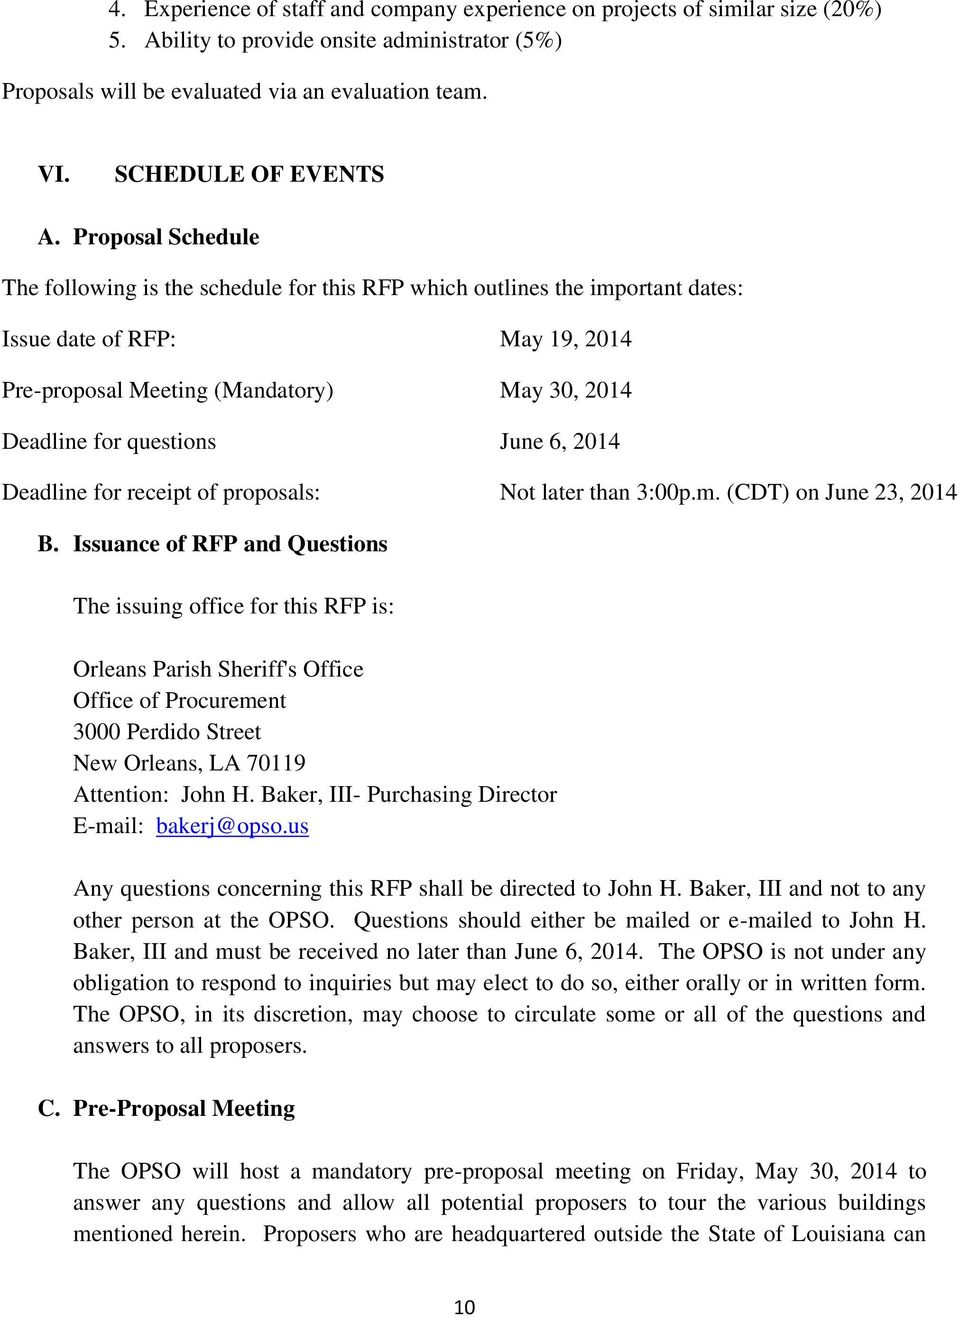 Proposal Schedule The following is the schedule for this RFP which outlines the important dates: Issue date of RFP: May 19, 2014 Pre-proposal Meeting (Mandatory) May 30, 2014 Deadline for questions